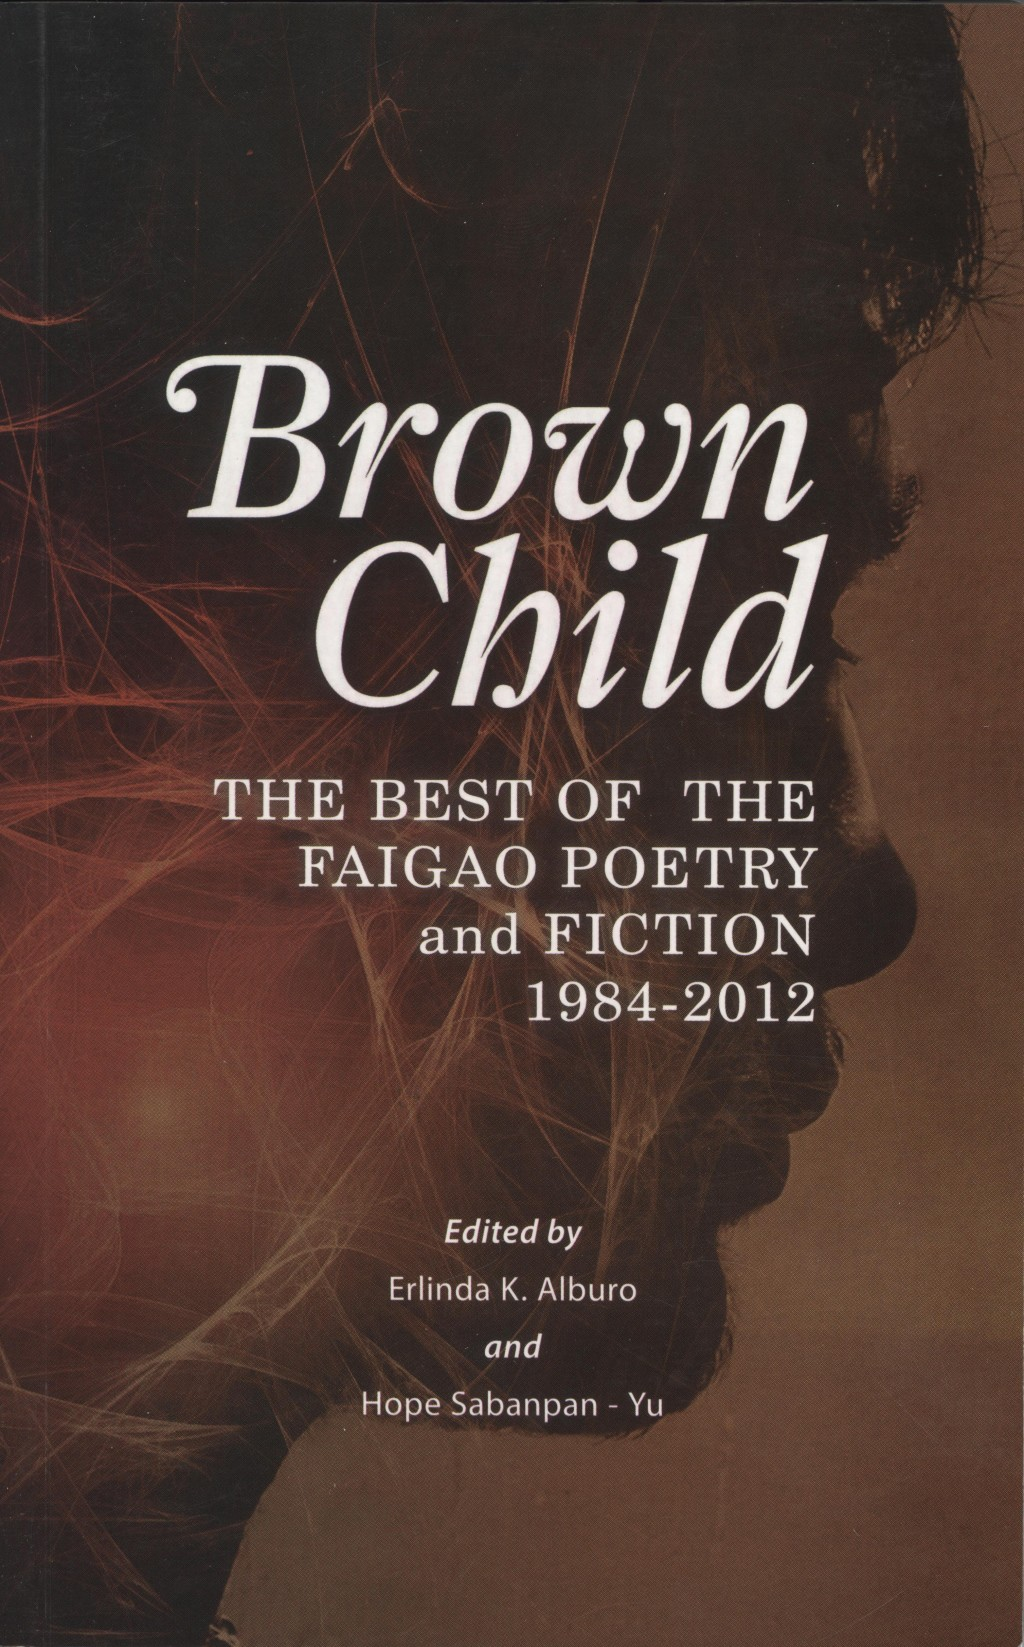 Brown Child: The Best of the Faigao Poetry and Fiction